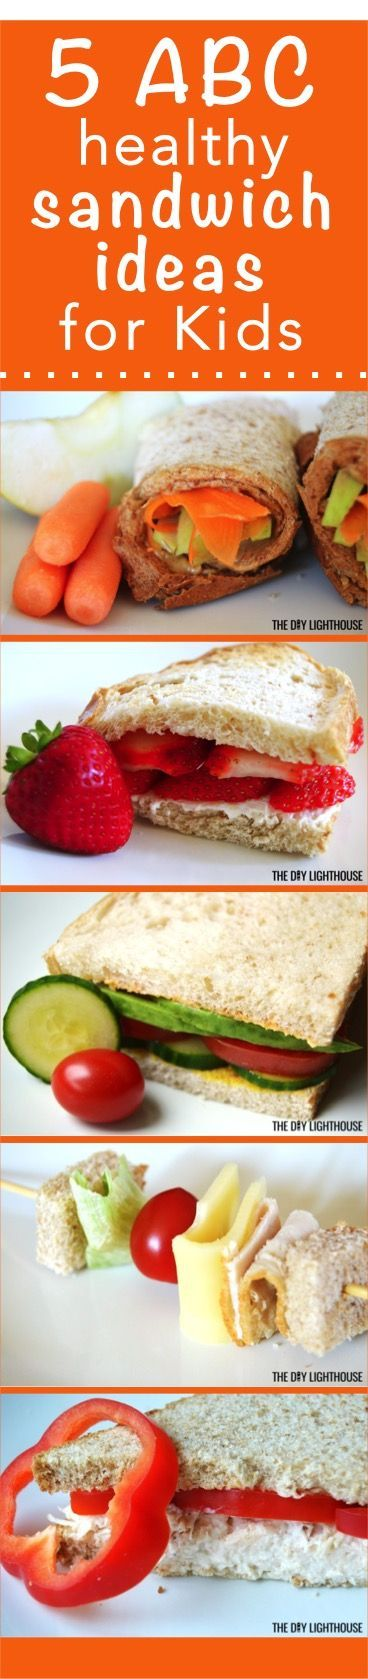 HEALTHY SANDWICH IDEAS for KIDS! 5 sandwich recipes for a good back to school lunch menu for the whole week long | rotate between these yummy and tasty sandwich ideas that are healthy but your kids will love at the same time!